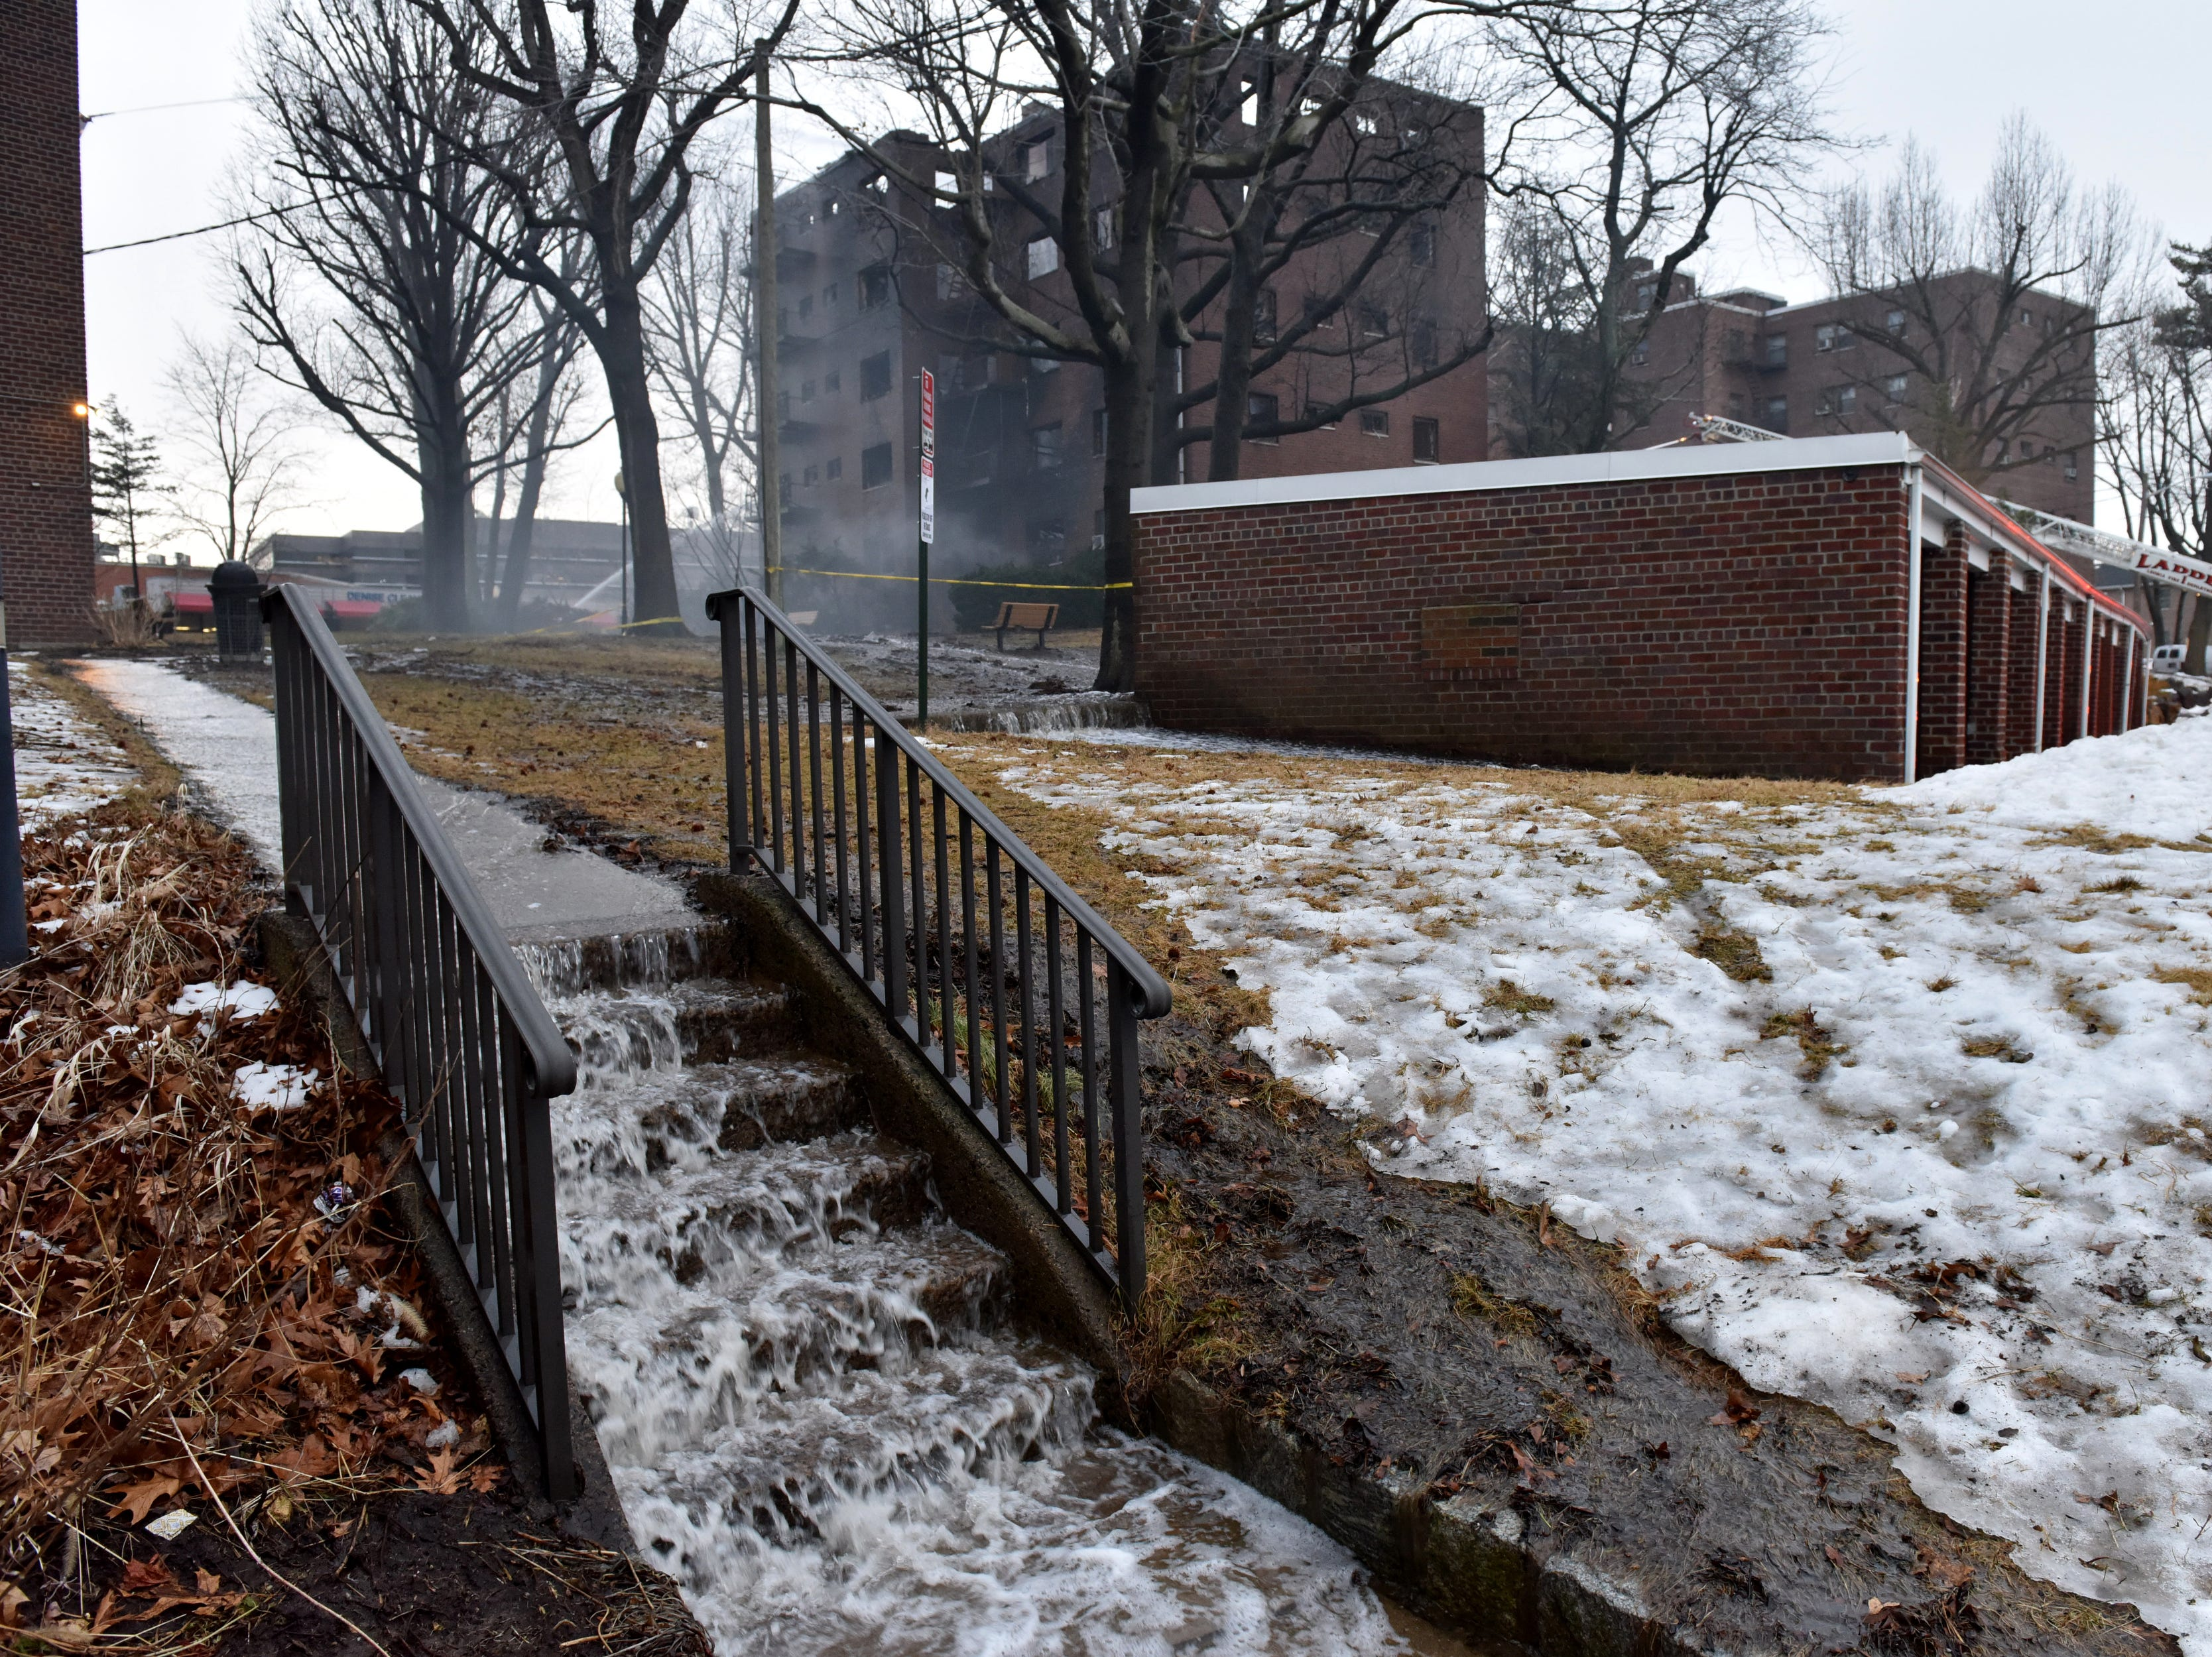 Water gushes down steps as firefighters are hitting hot spots the morning after a fire broke out at an apartment complex on Edwin Ave in Fort Lee on Friday February 15, 2019.